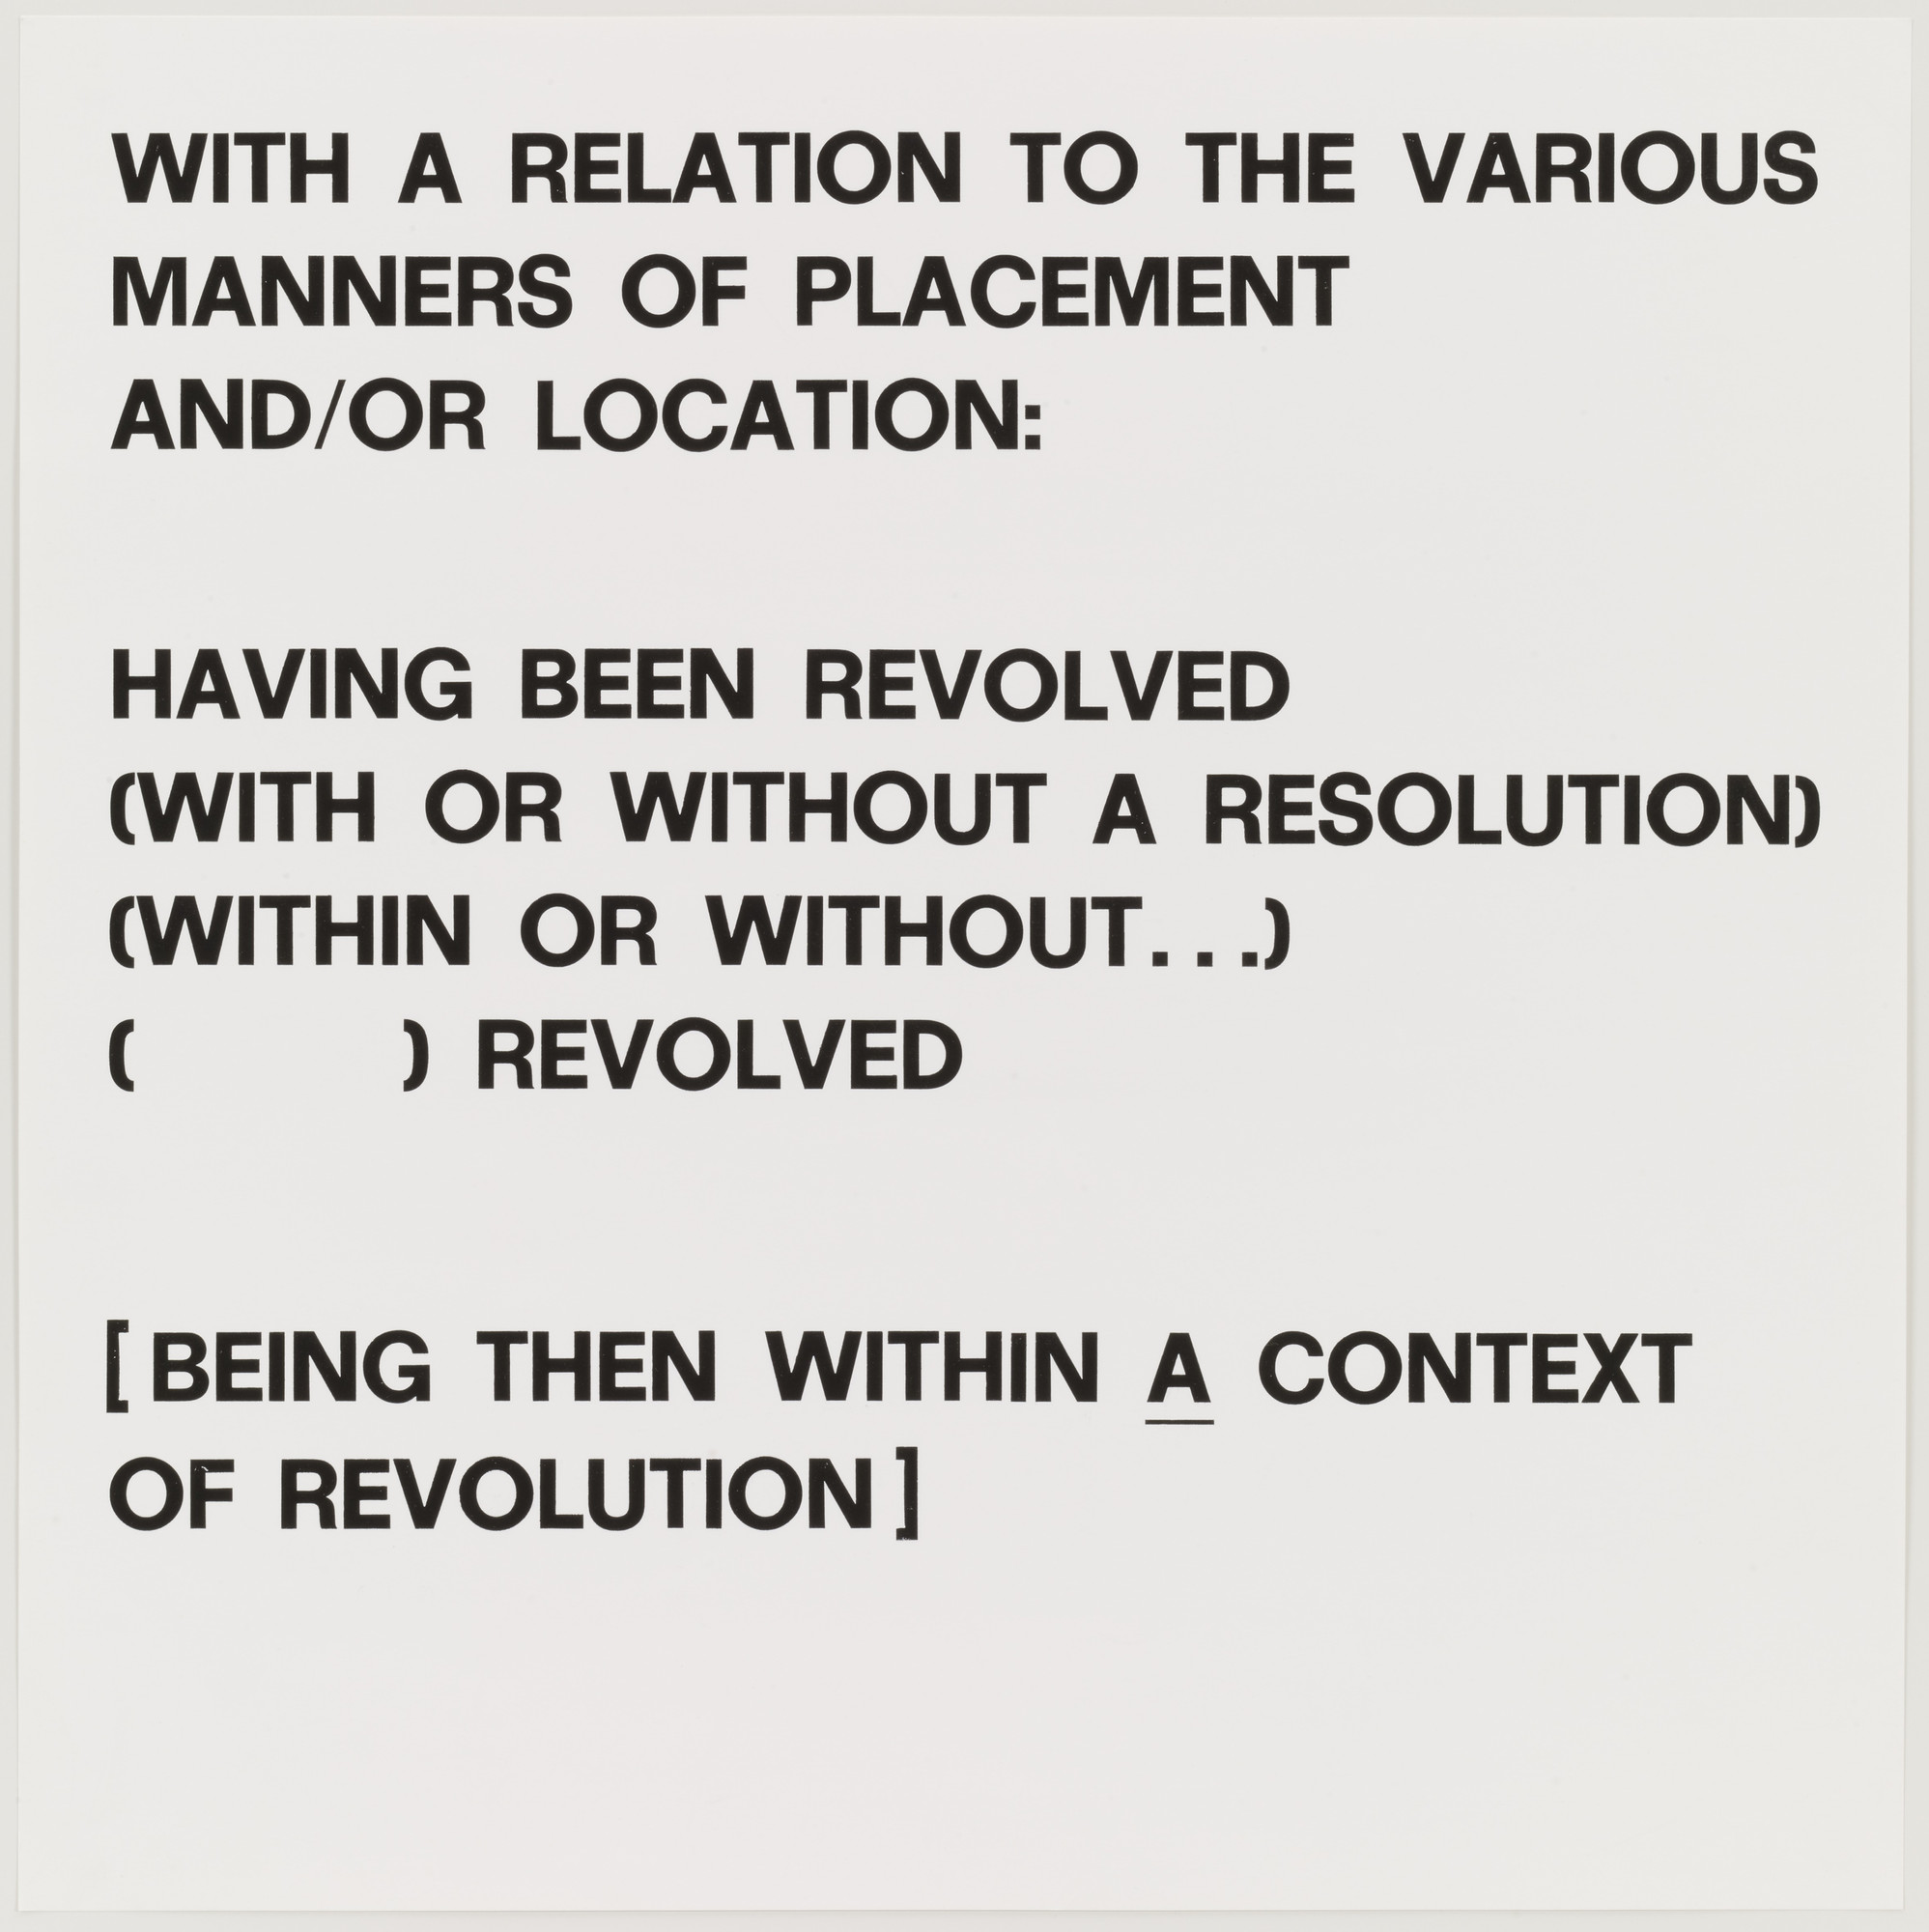 Lawrence Weiner. With a Relation to the Various Manners of Placement and/or Location. 1974